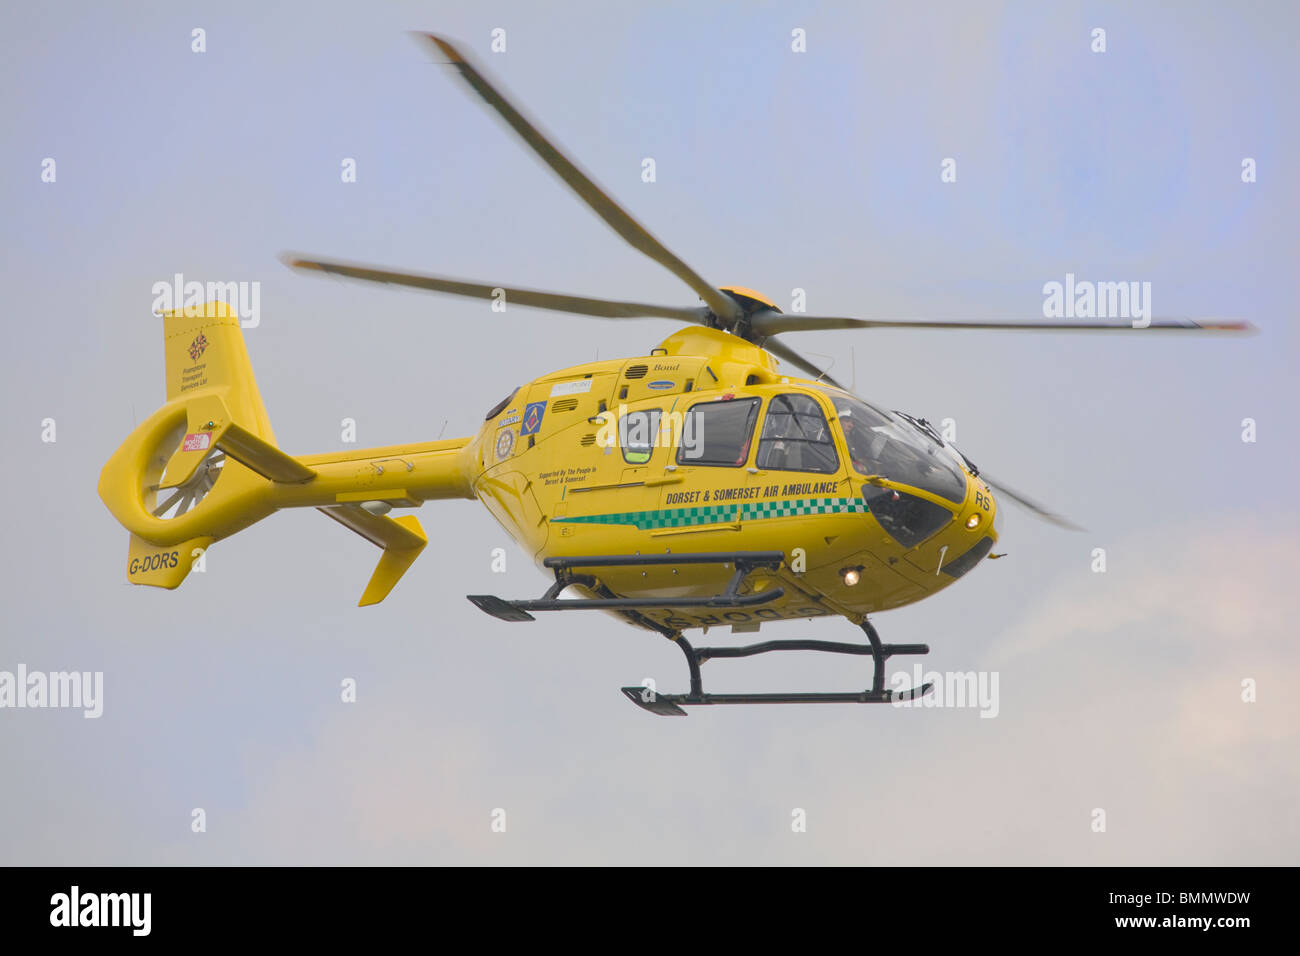 Dorset and Somerset Air Ambulance helicopter (Eurocopter EC 135 T2+) - Stock Image